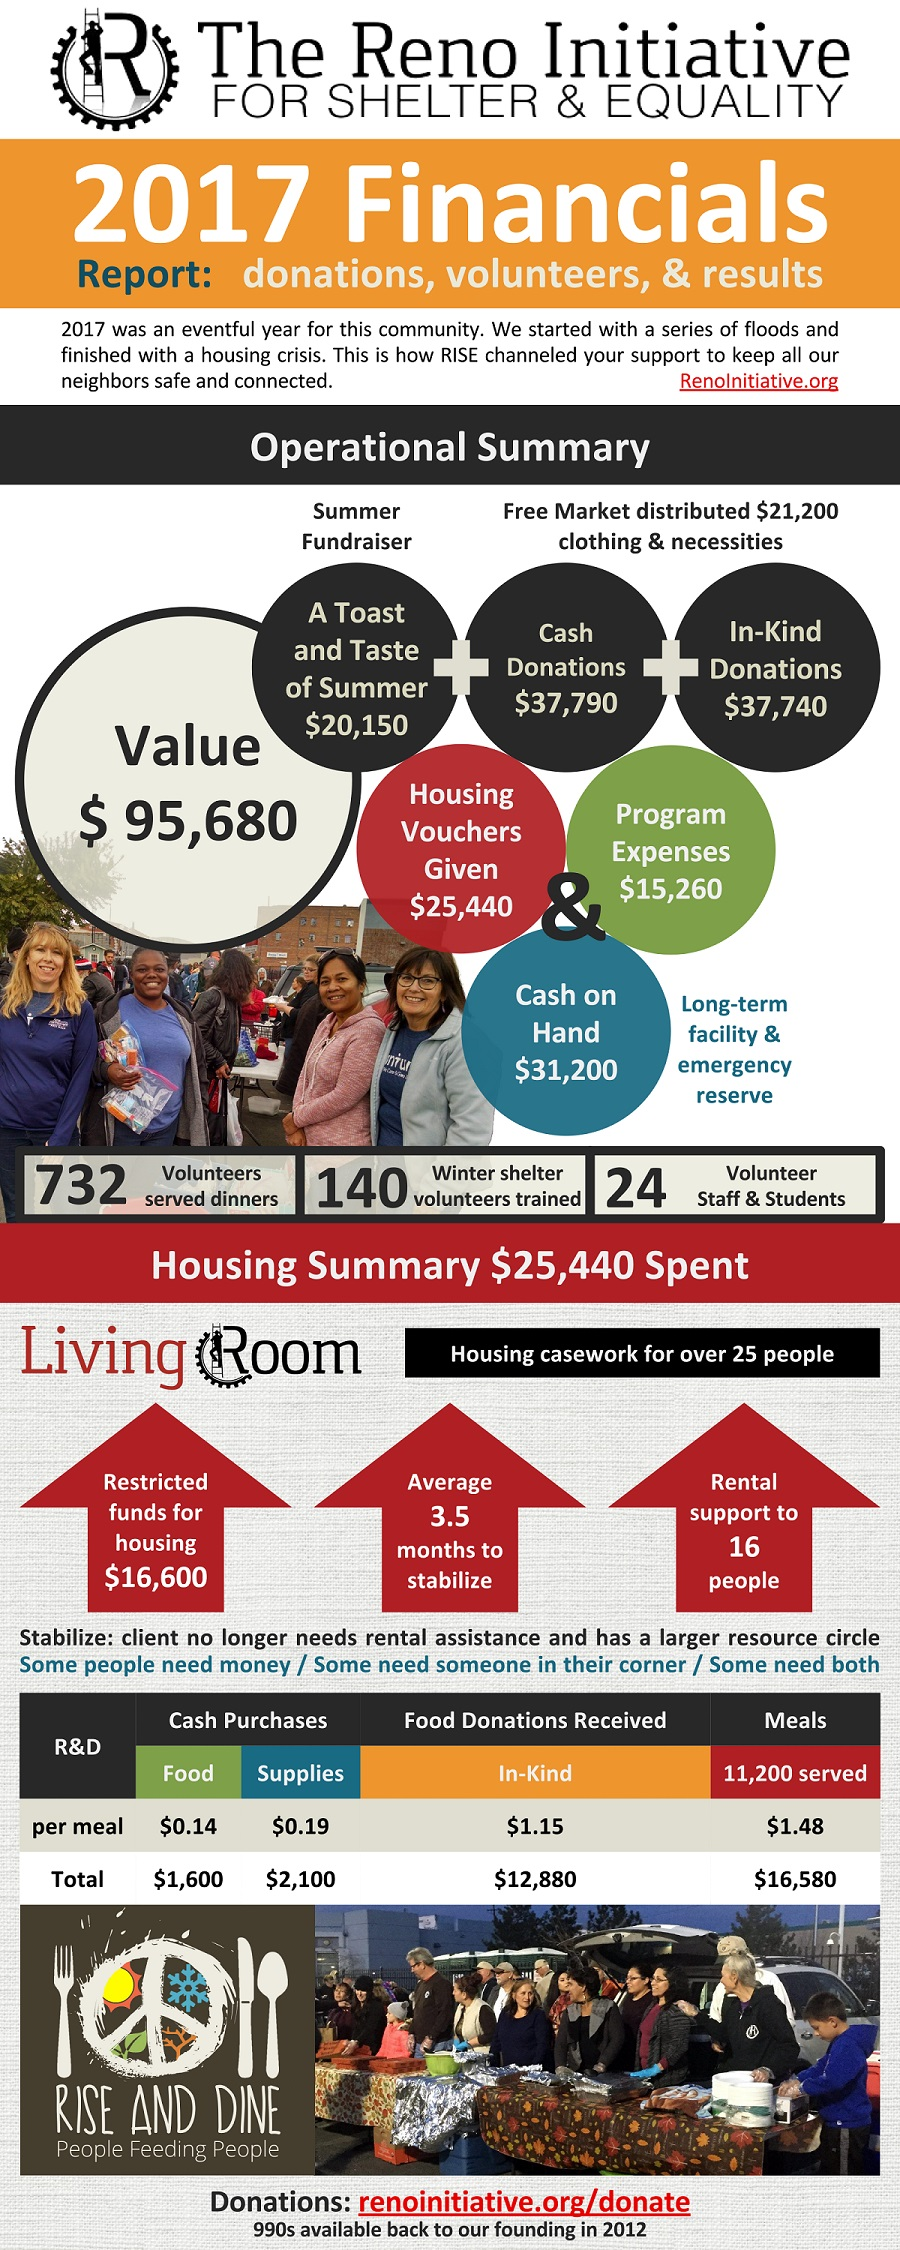 Revenue and expenses for housing, food, and other neighborhood building programs